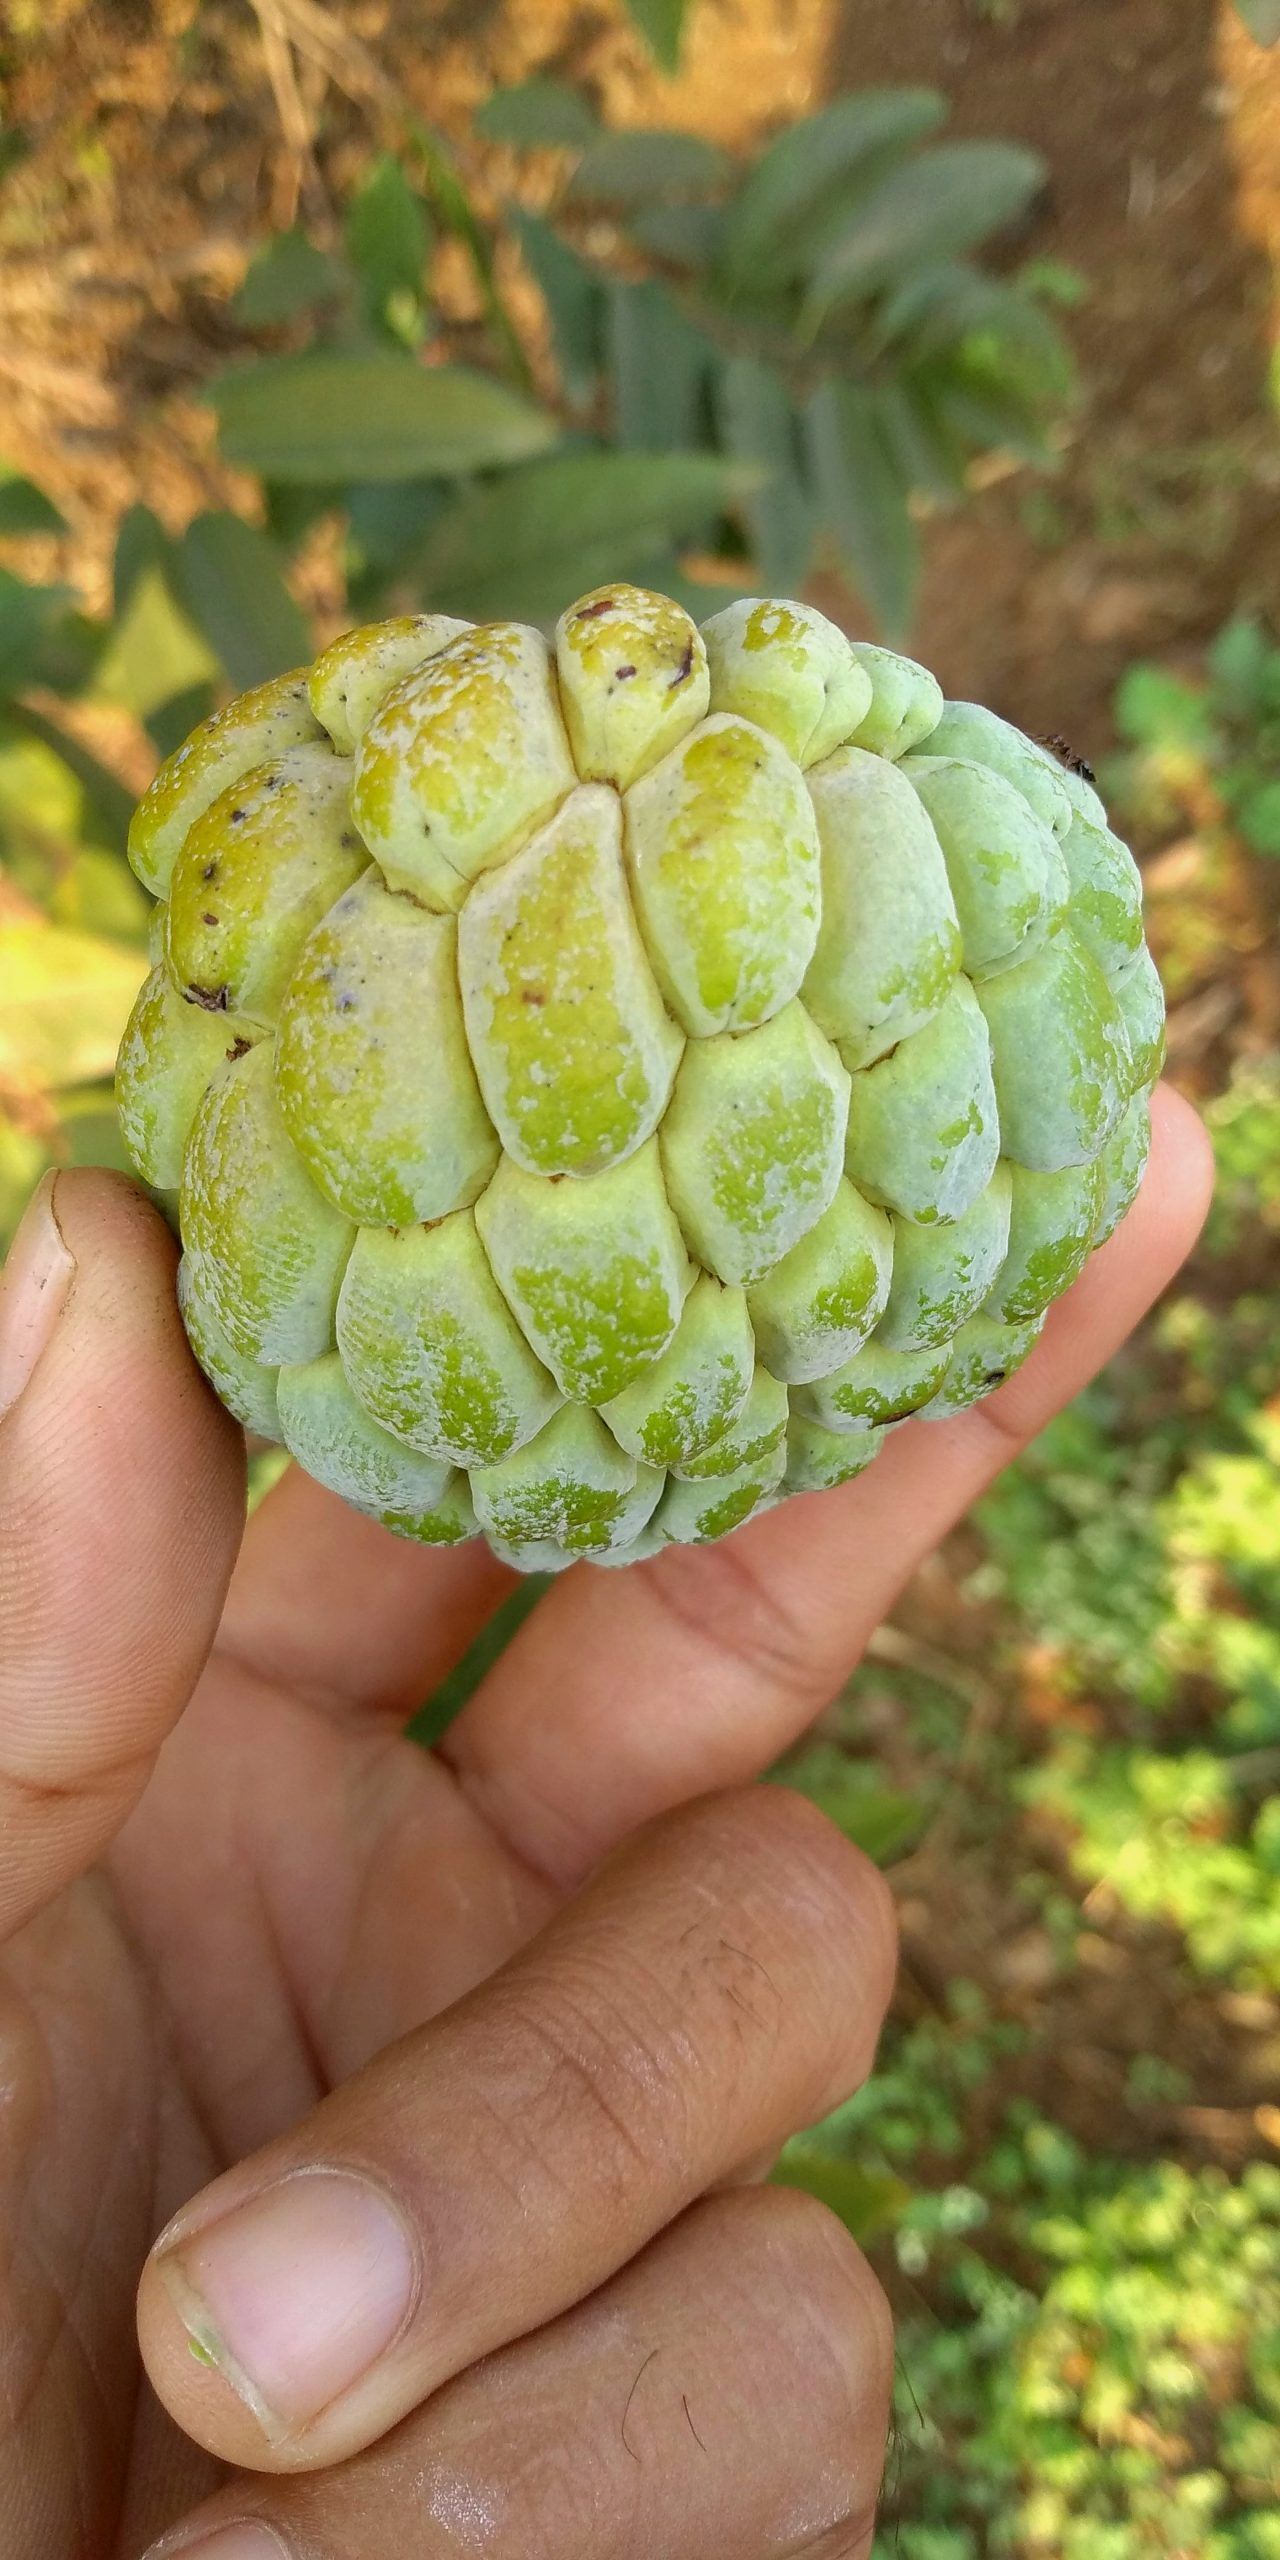 Sugar apple in hand